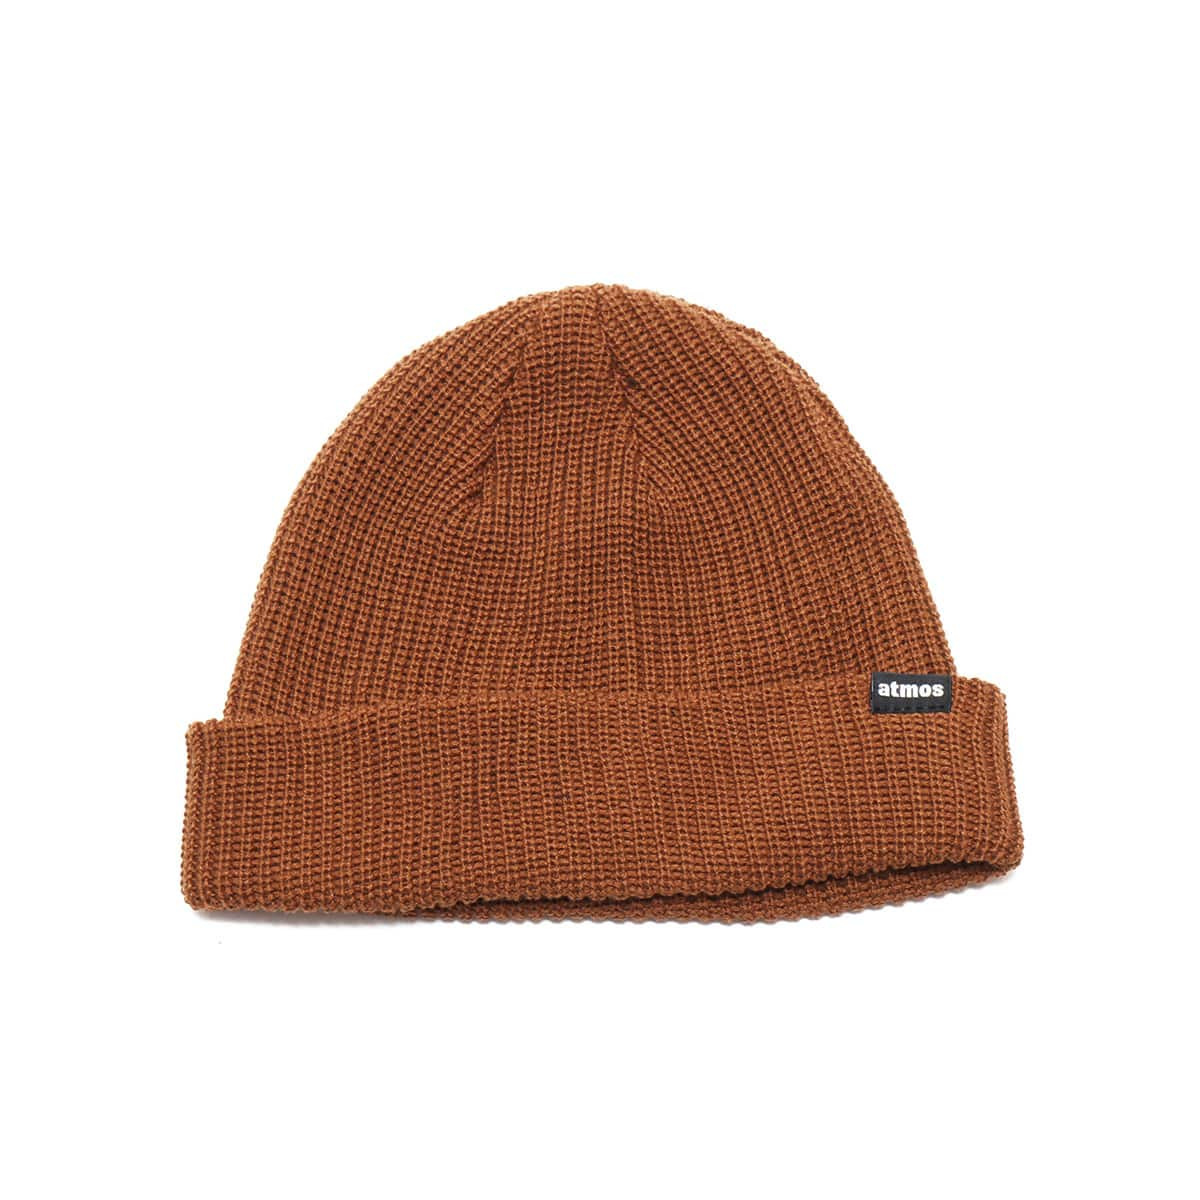 atmos WATCH CAP BROWN 20FA-I_photo_large